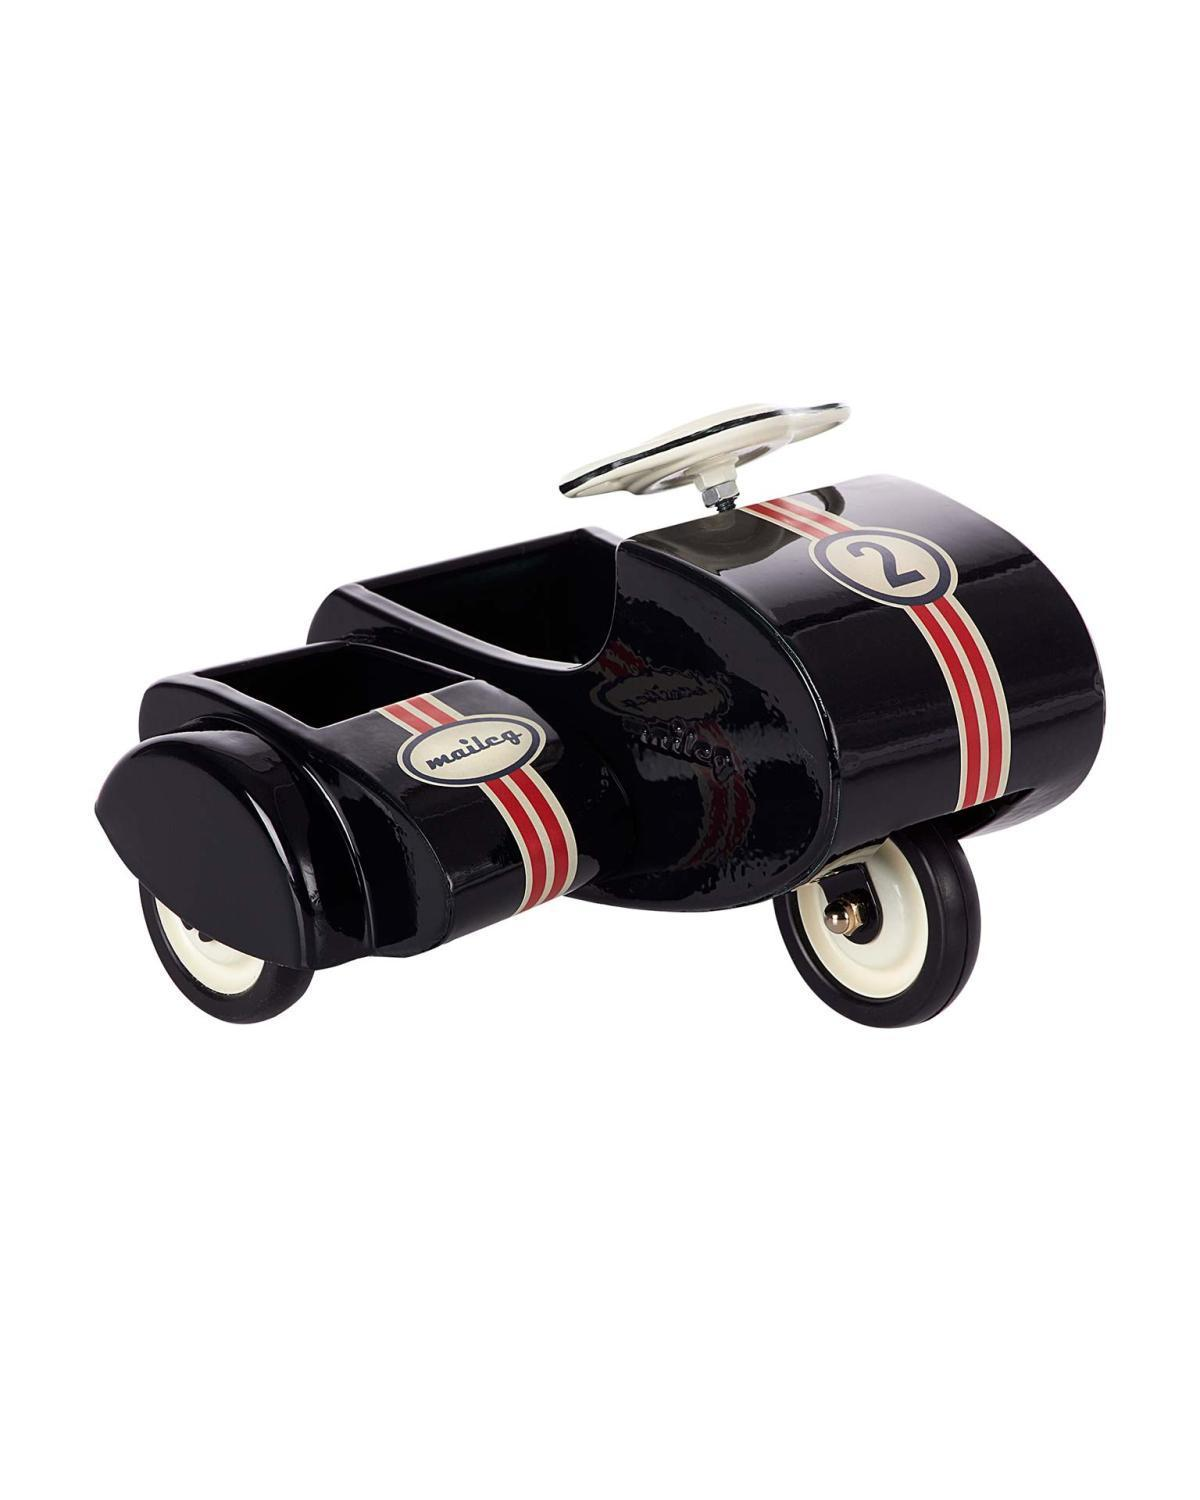 Little maileg play scooter with sidecar in black